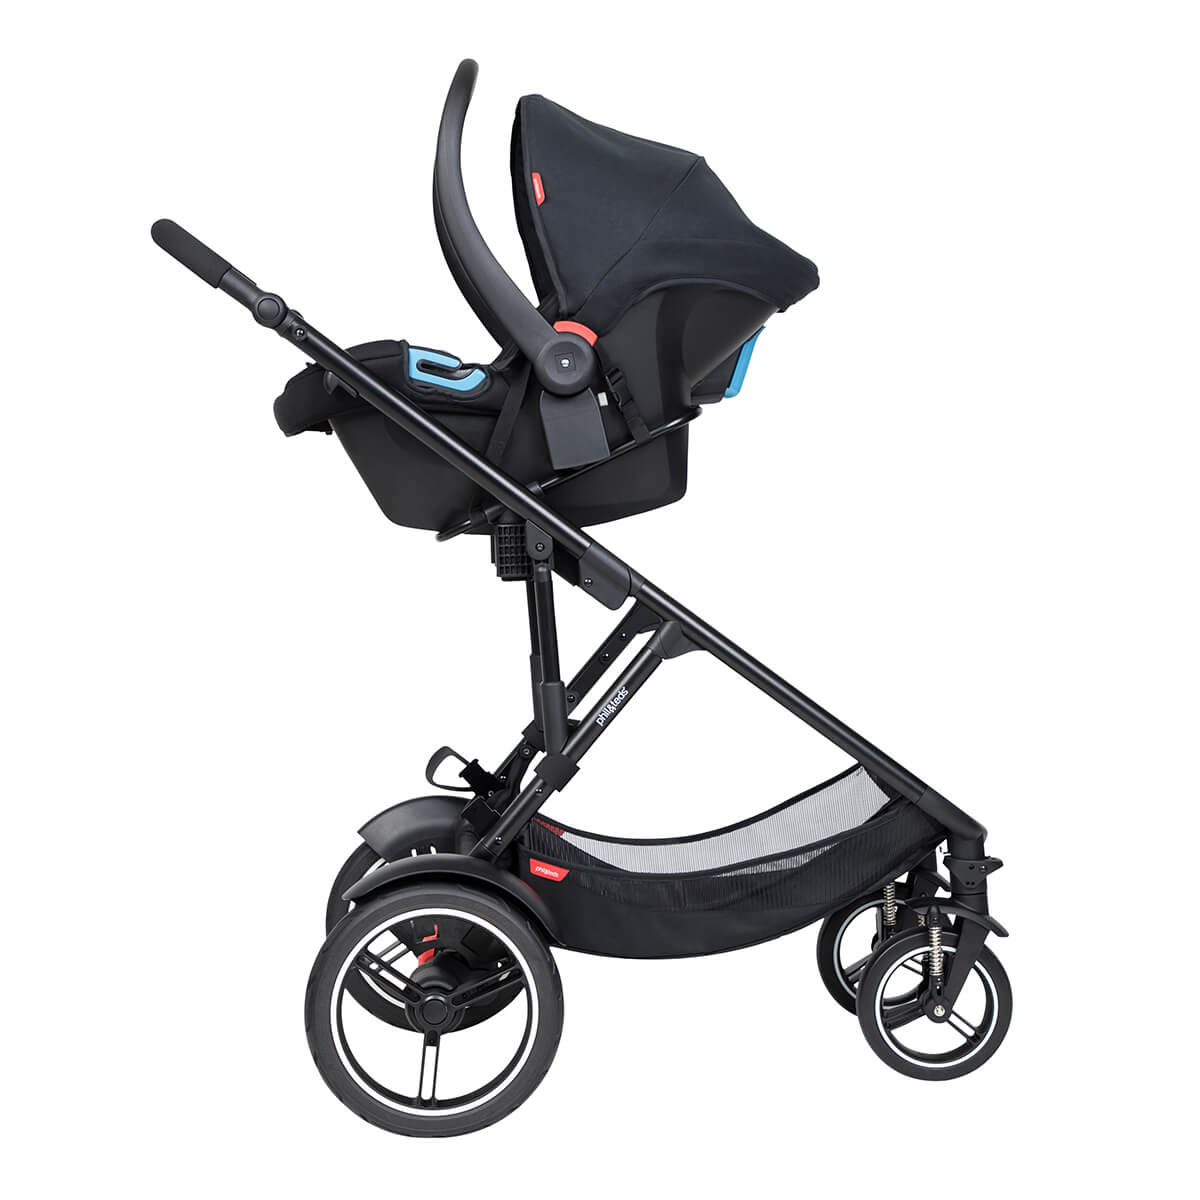 https://cdn.accentuate.io/4509912891469/19466203660482/philteds-voyager-buggy-with-travel-system-in-parent-facing-mode-v1626485555300.jpg?1200x1200